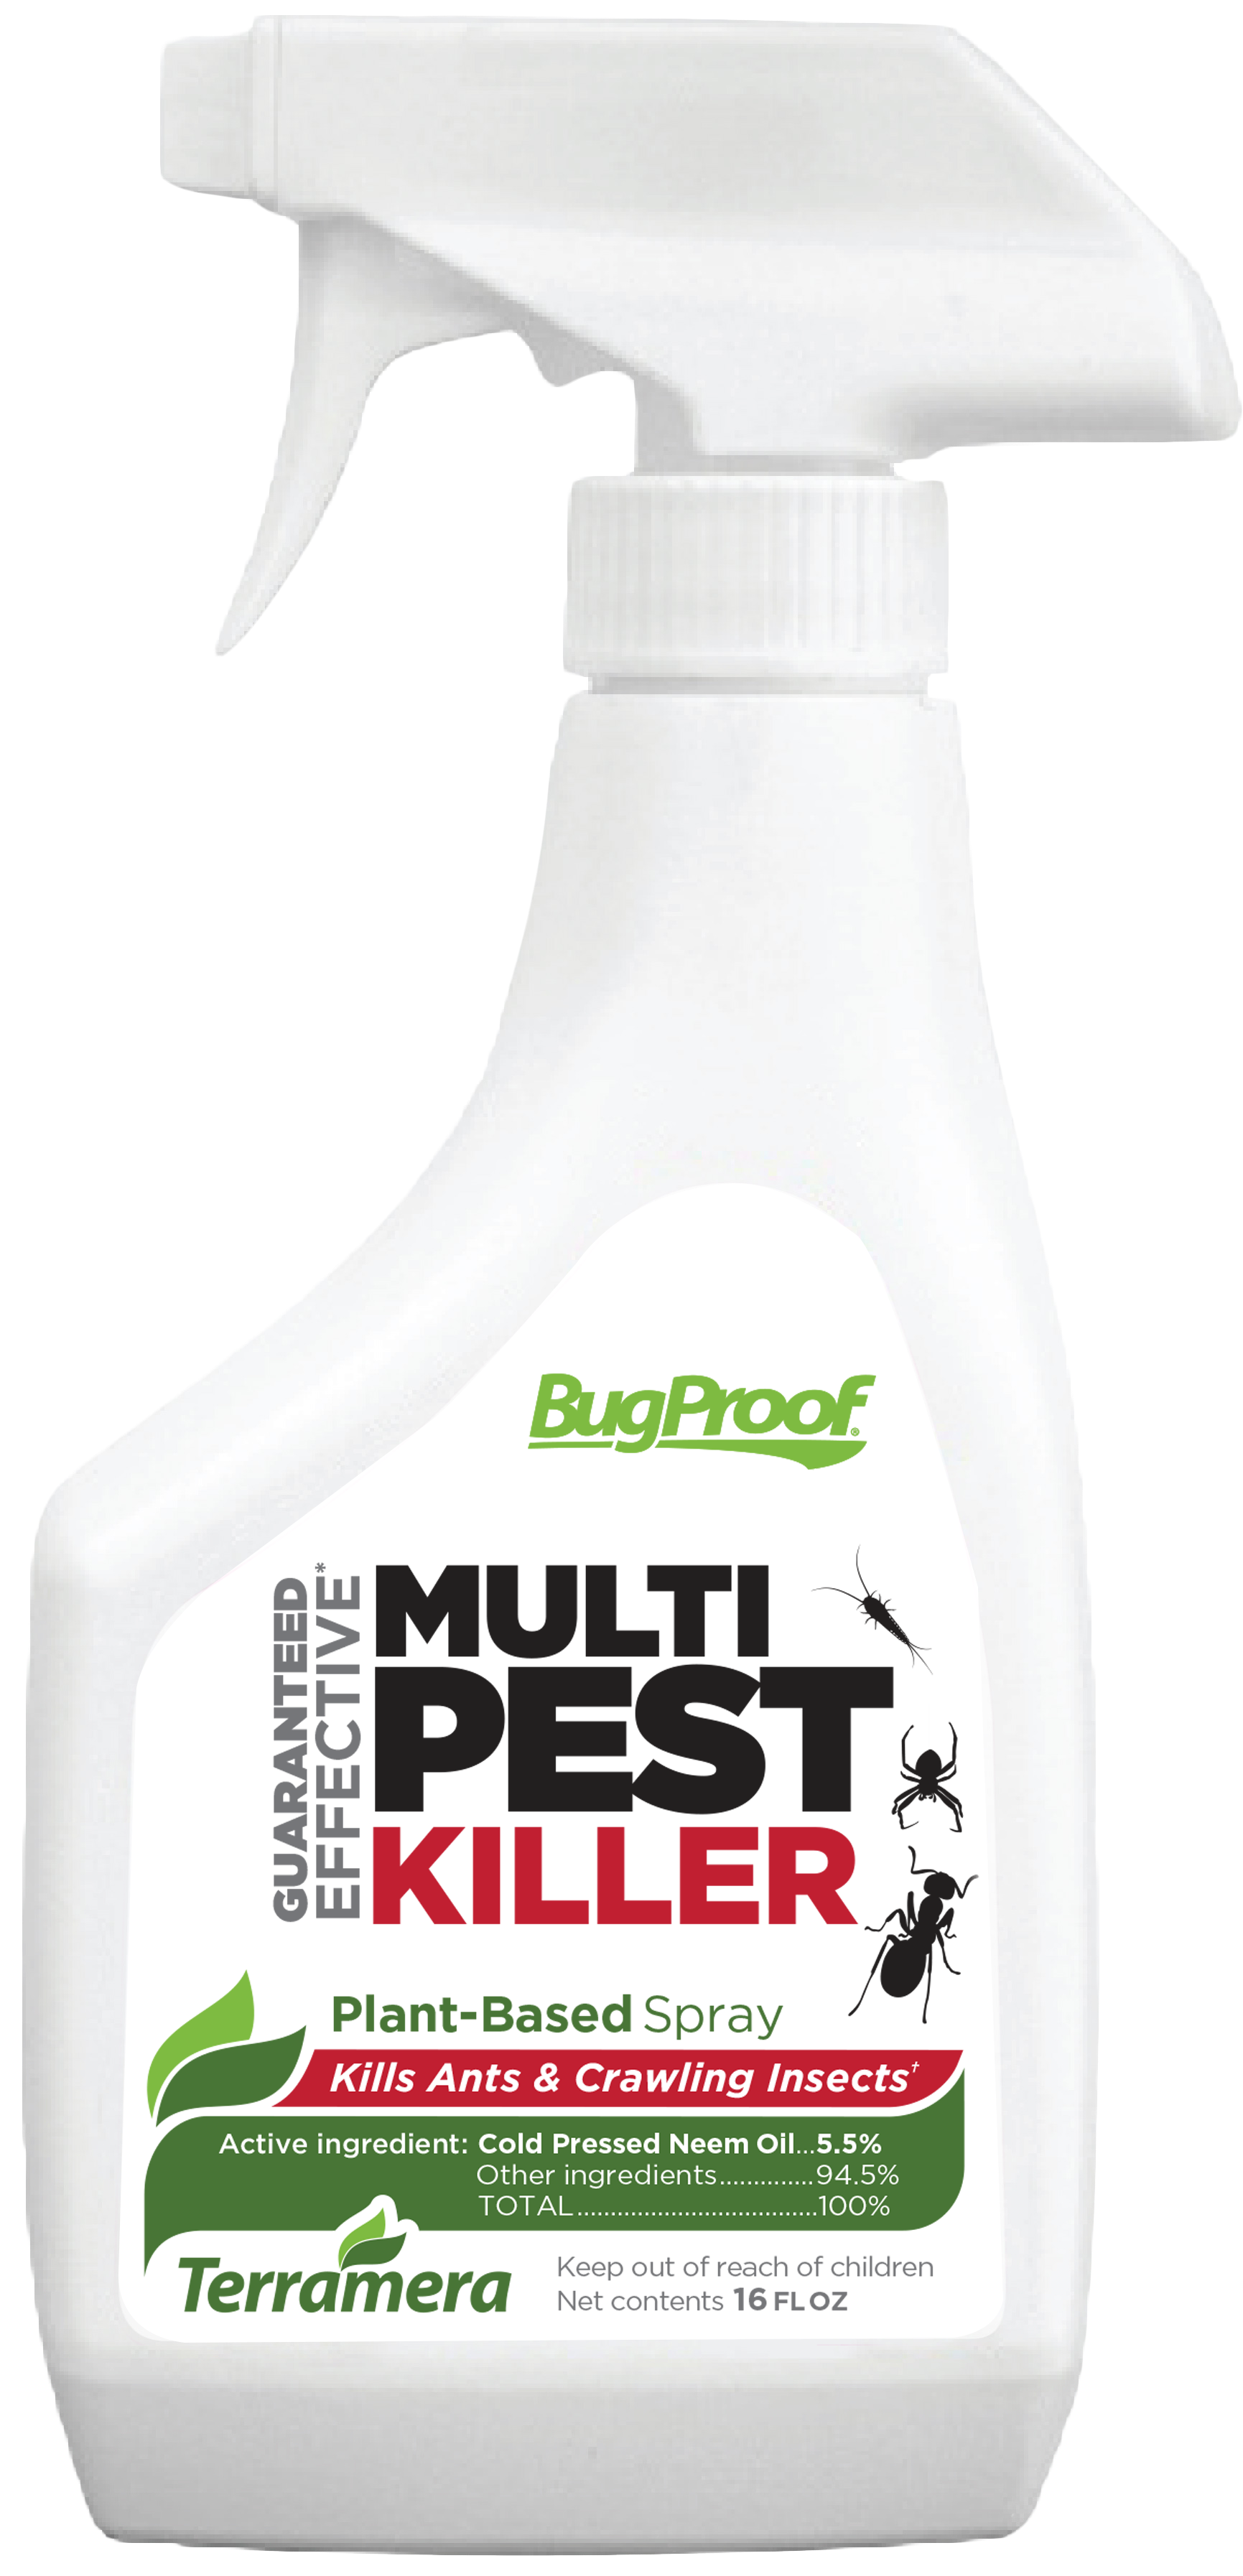 Multipest Killer Spray Logo